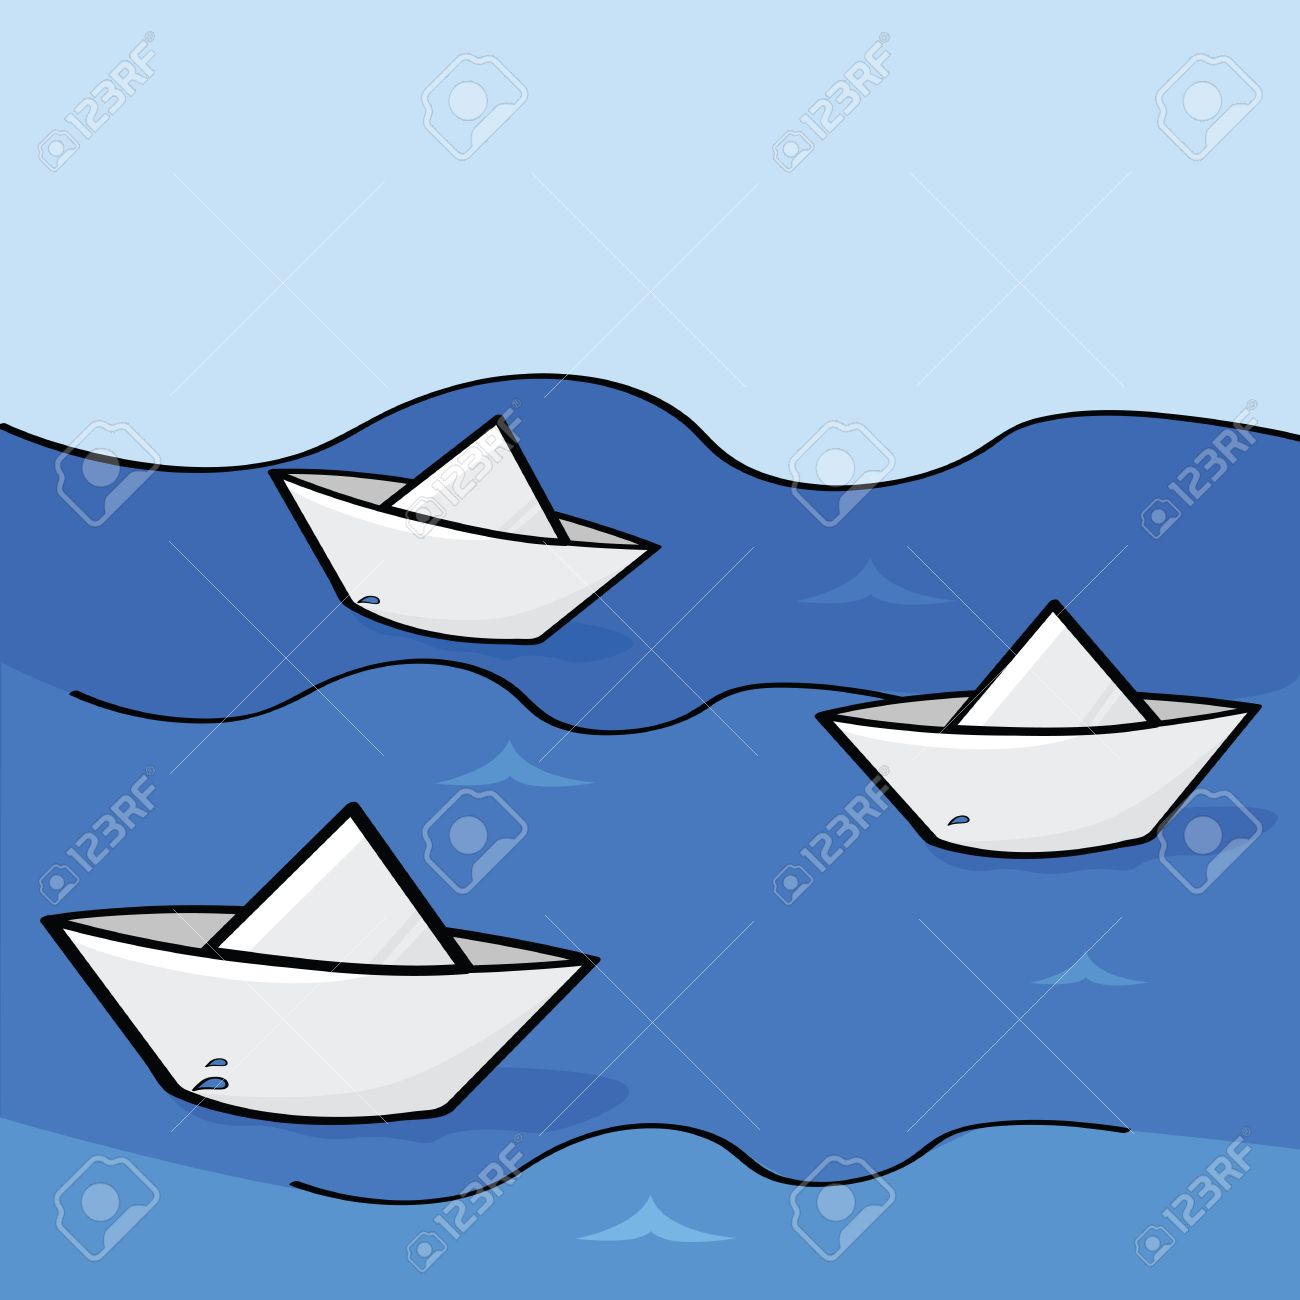 Cartoon Illustration Of Three Paper Boats Floating Down The Water.